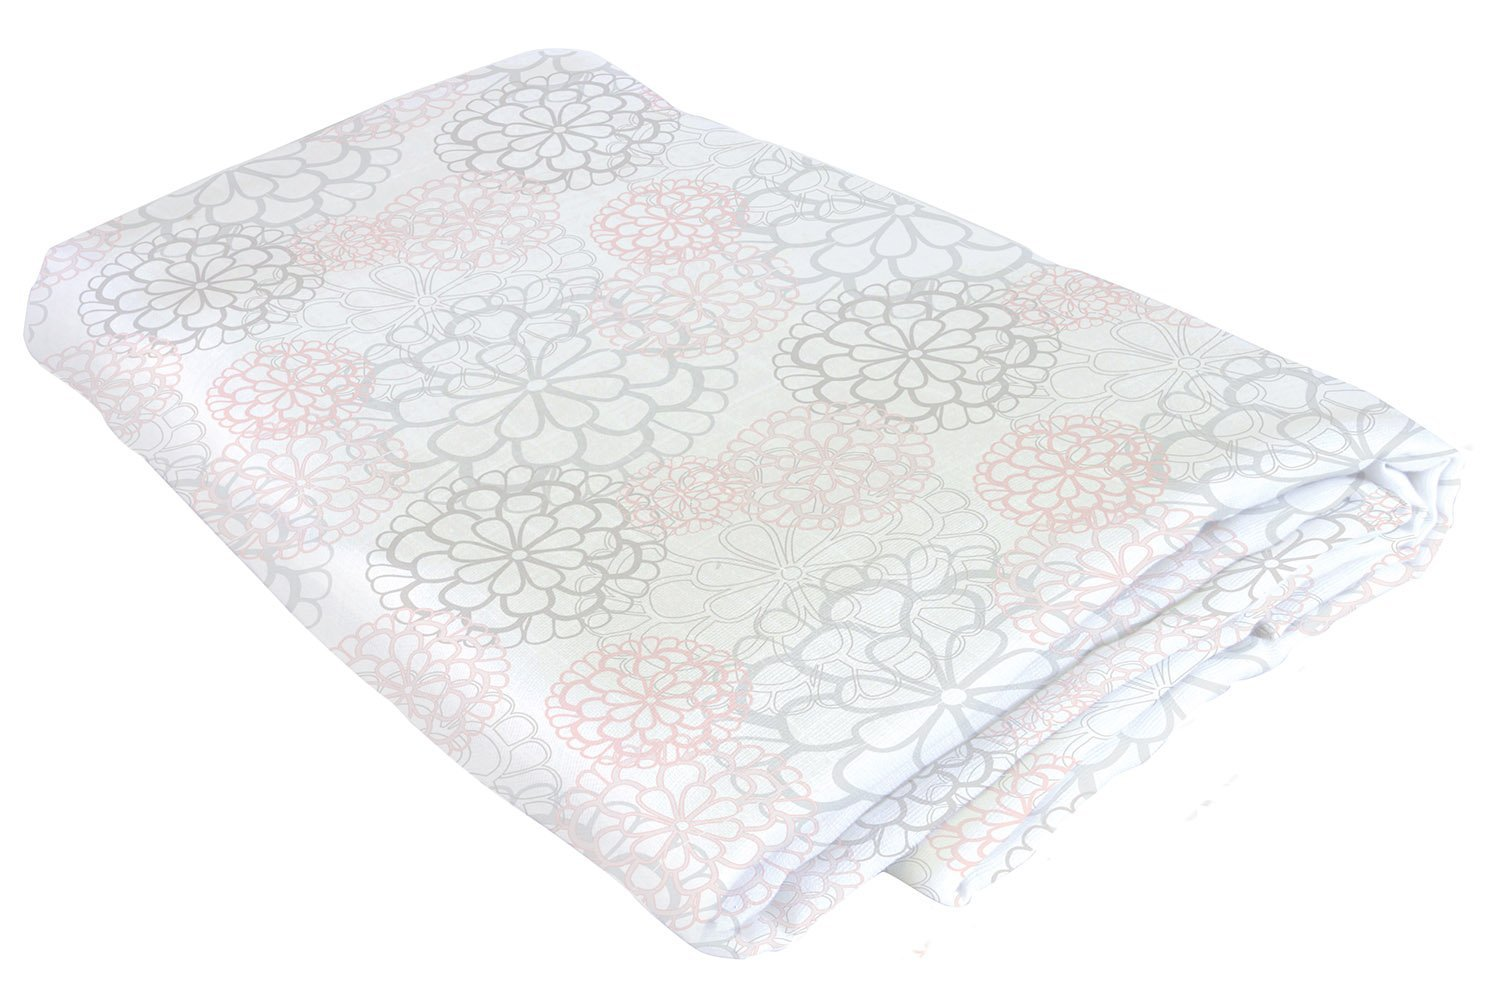 Stephan Baby Viscose Cotton Muslin Swaddle Blanket, Pink and Gray Floral